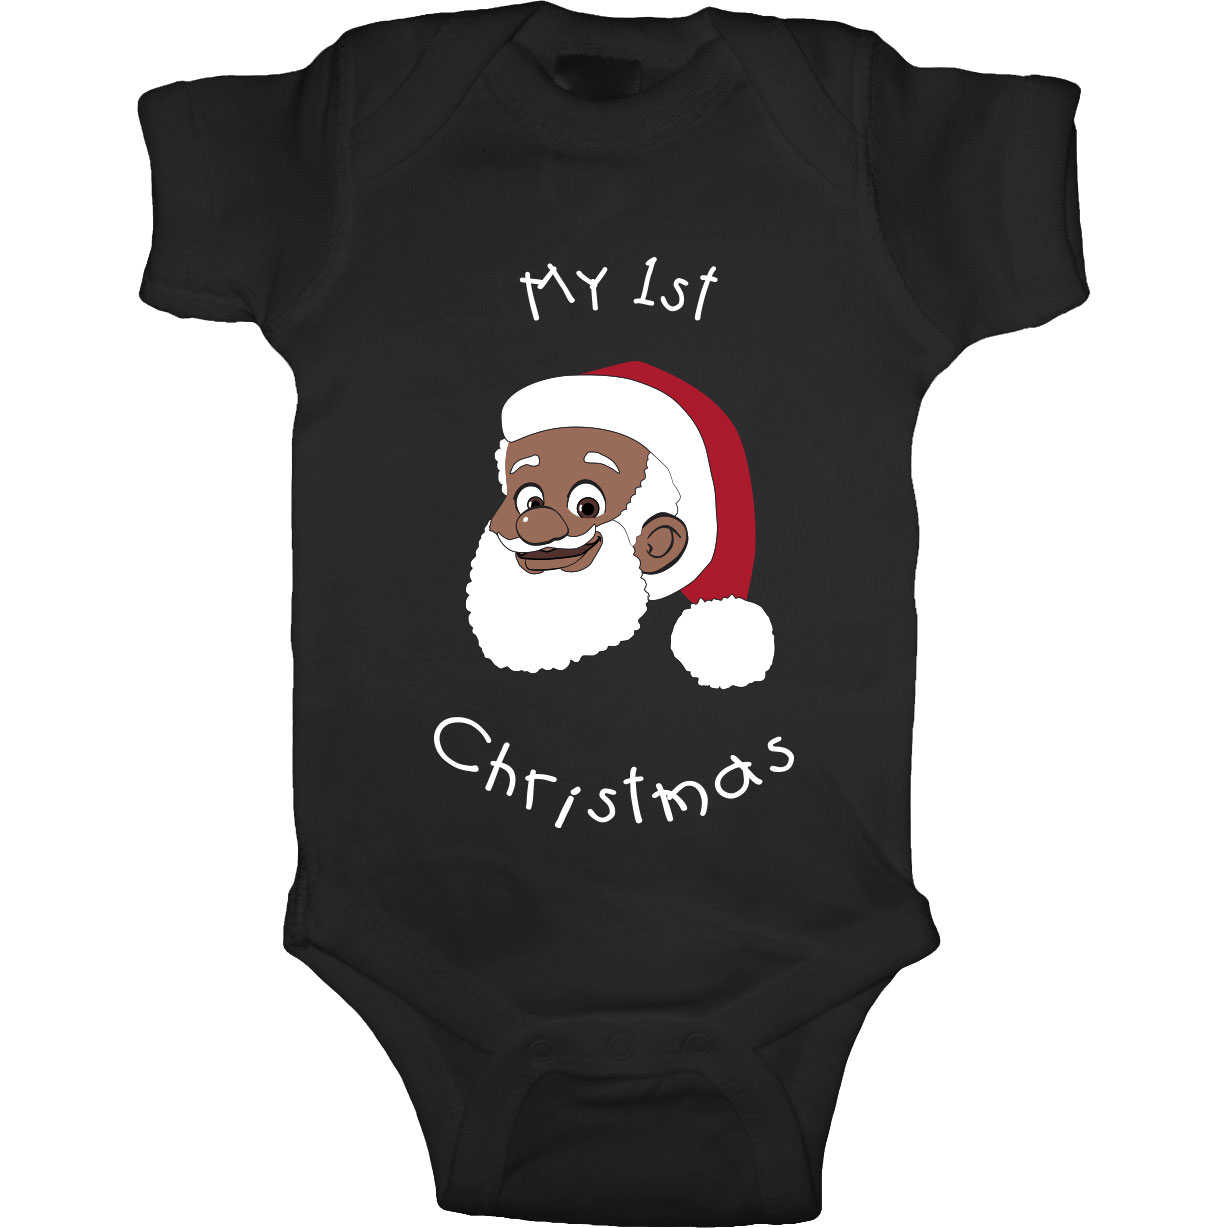 My 1st Christmas Onesie [Black]